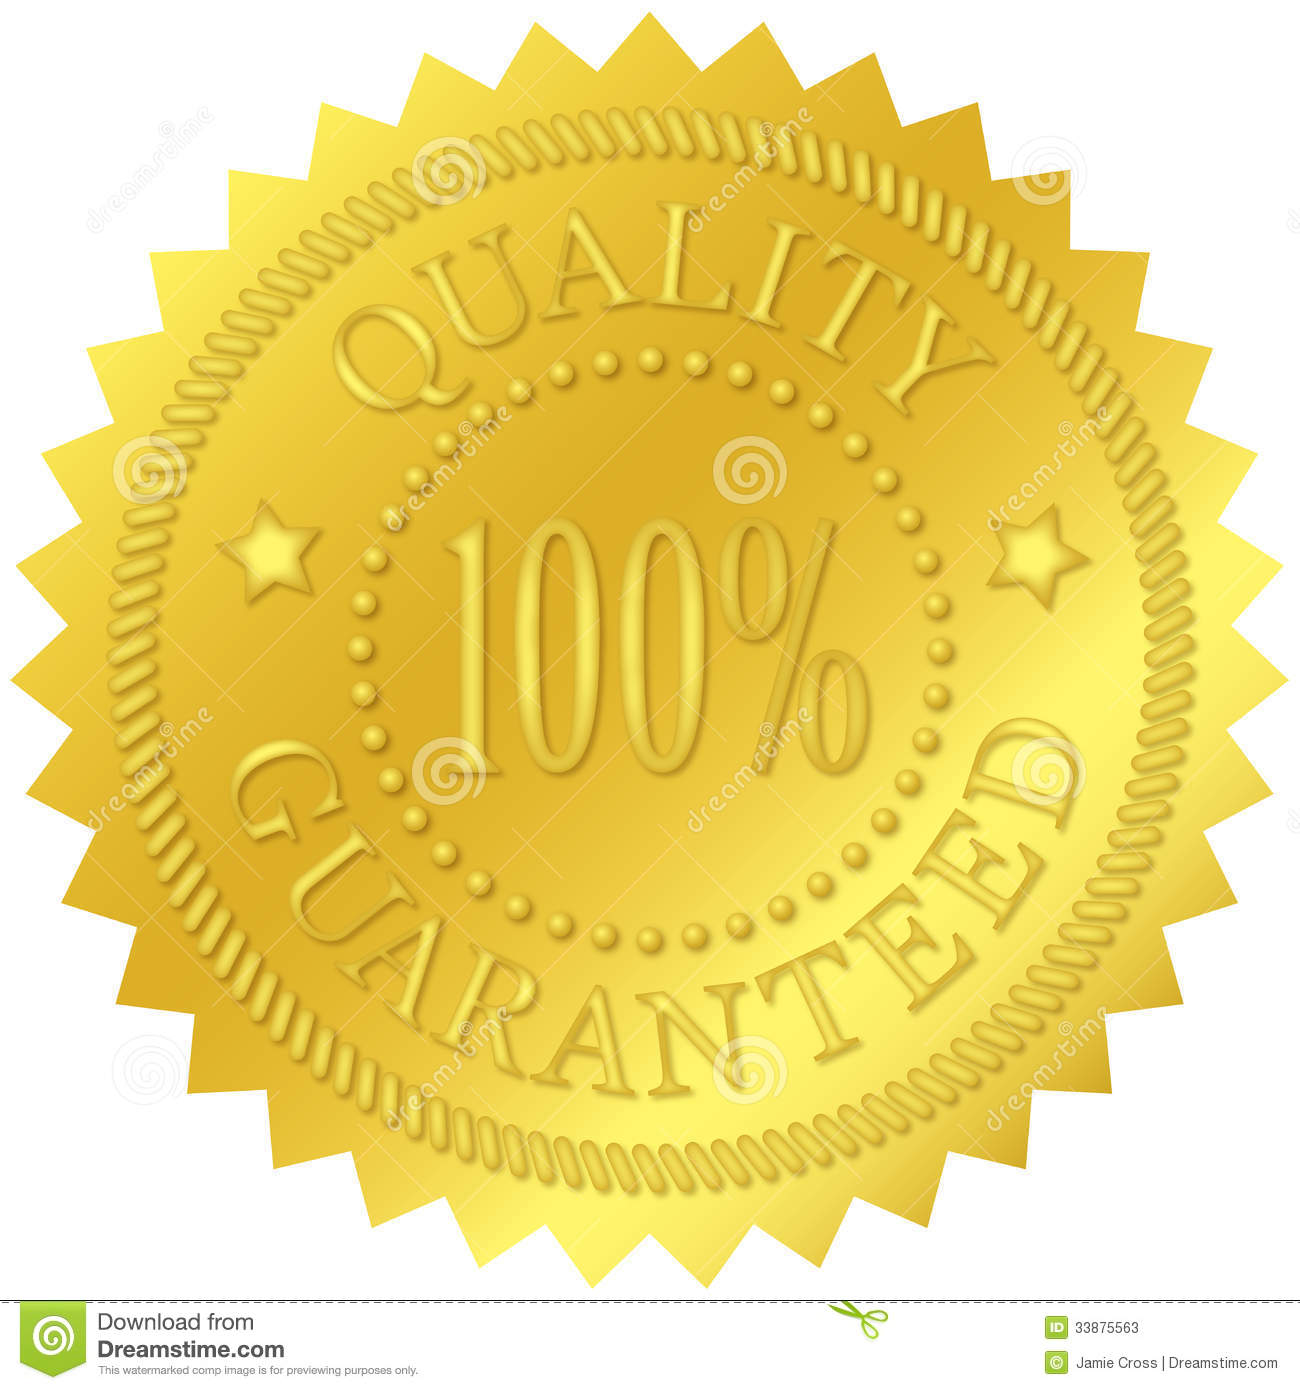 Quality Seal Clipart Quality Guarant...